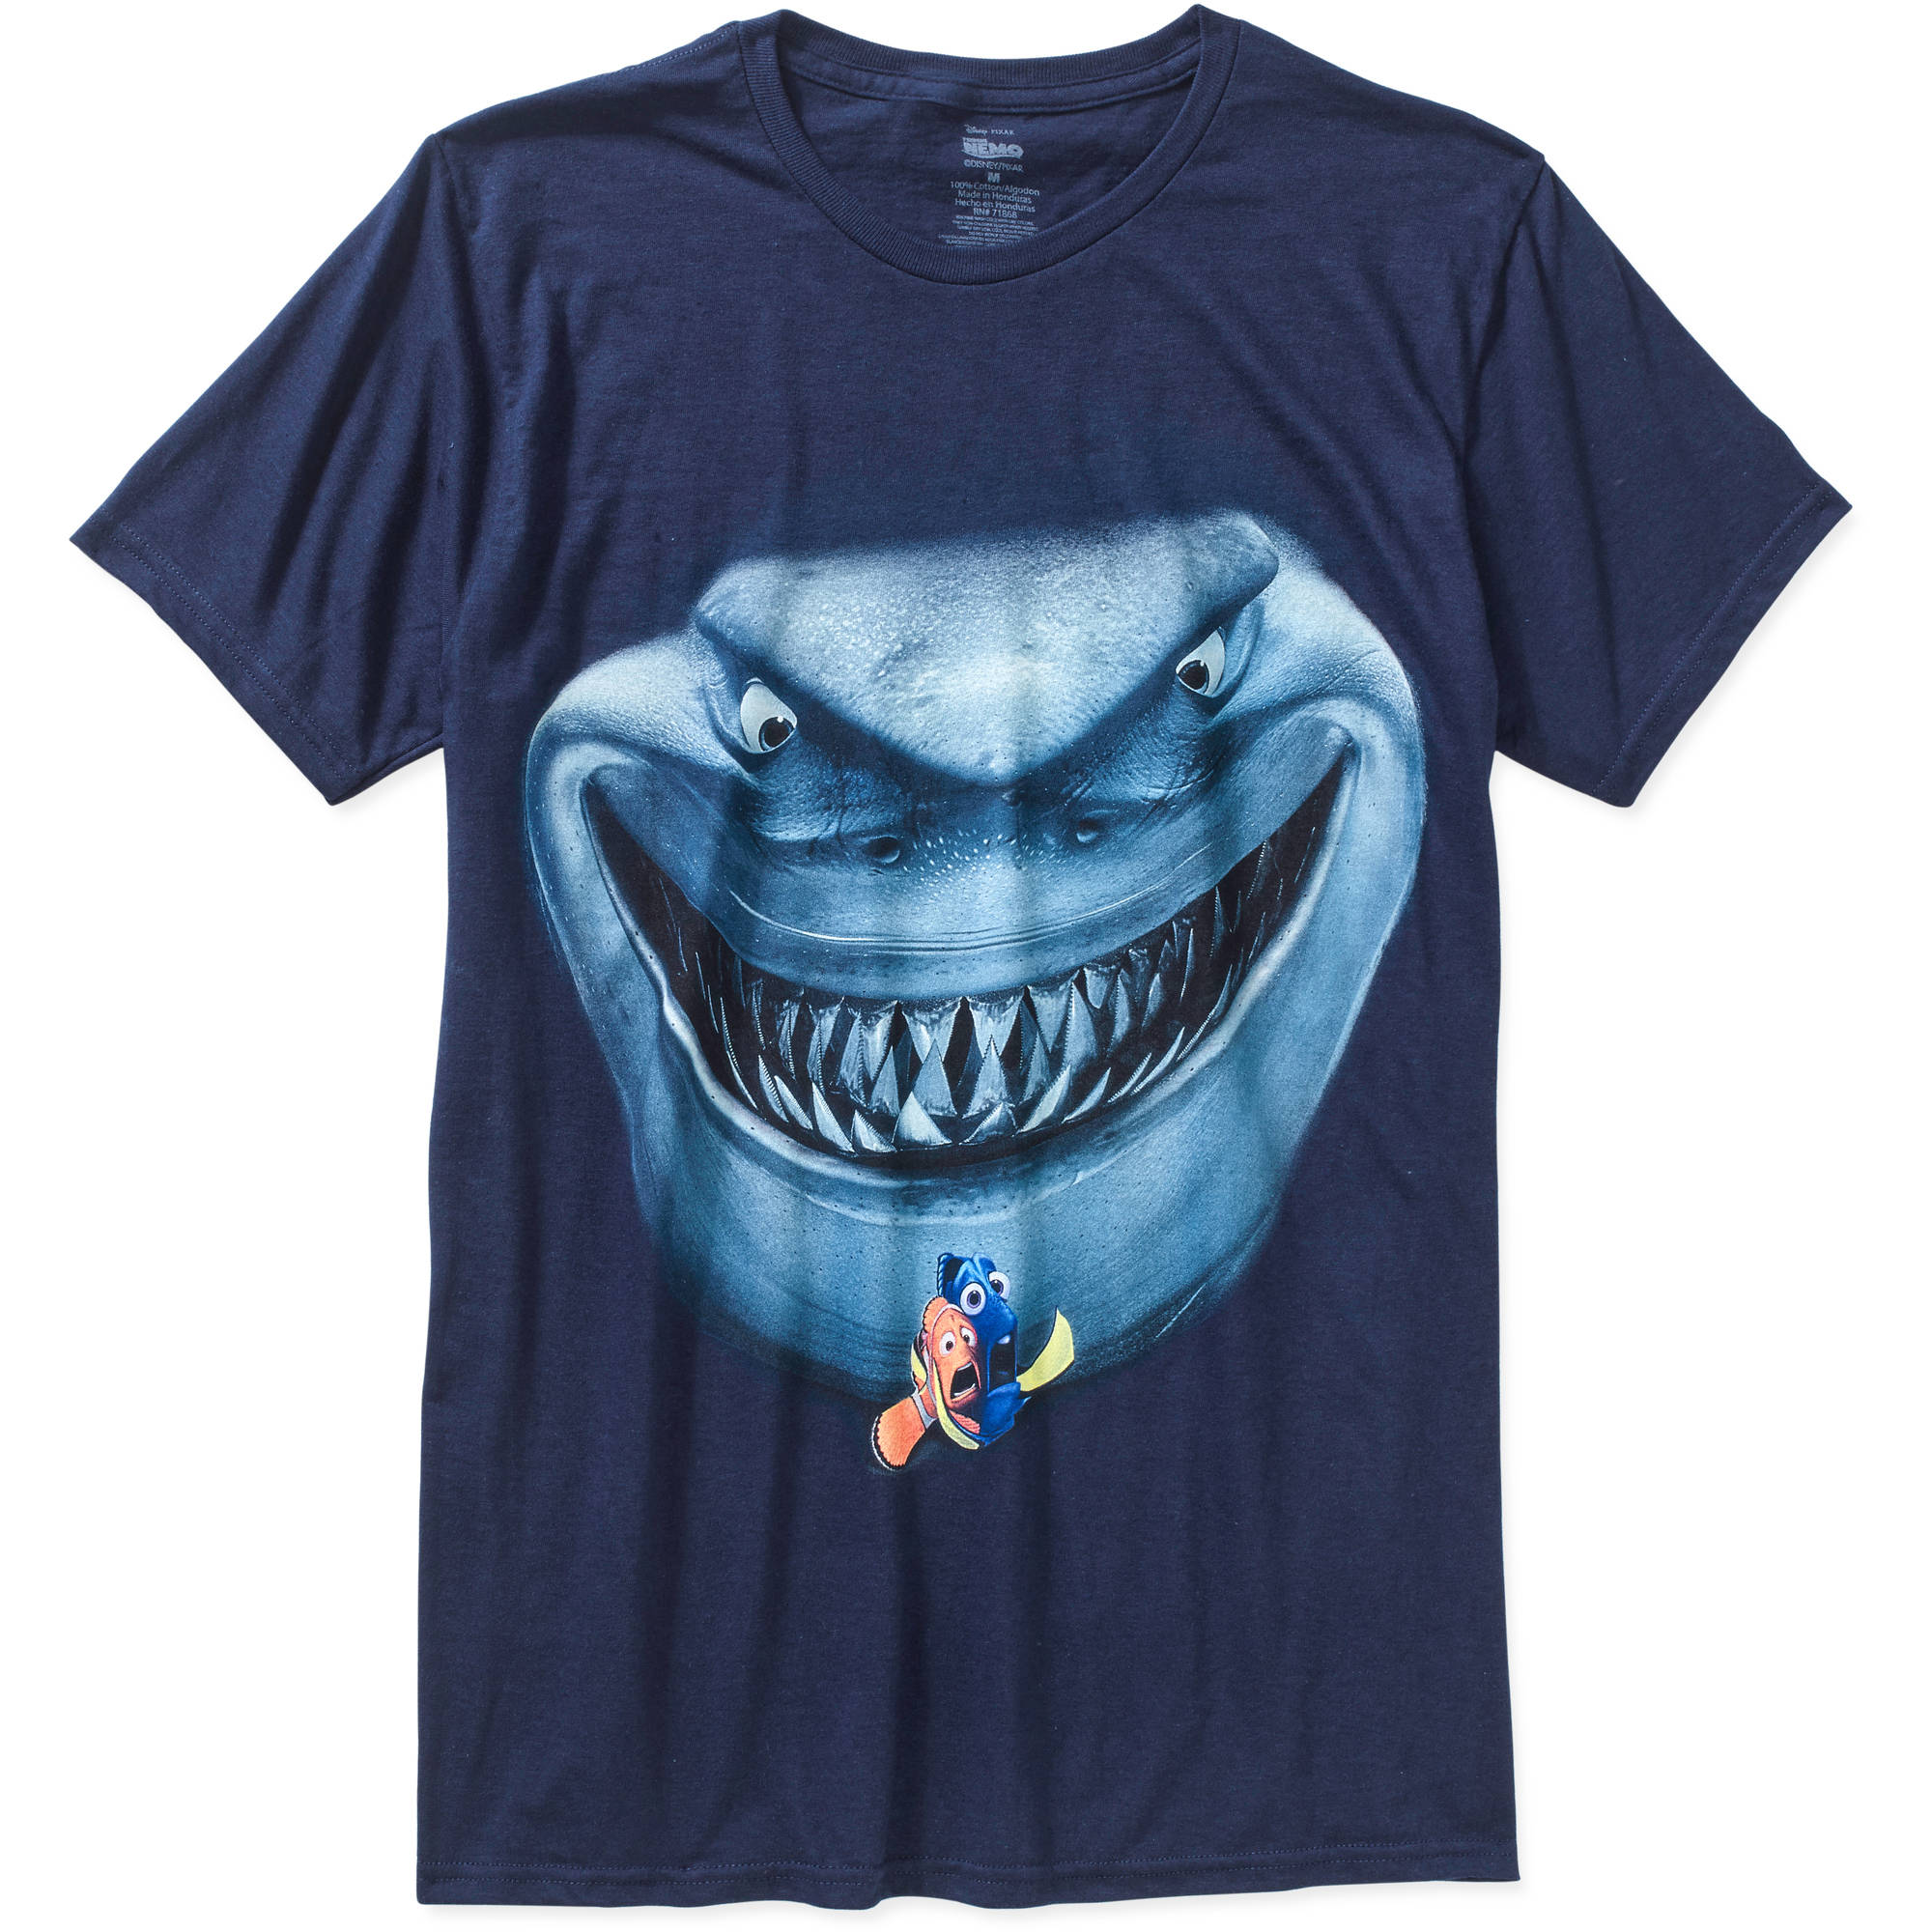 Finding Nemo Shark Men's Graphic Tee